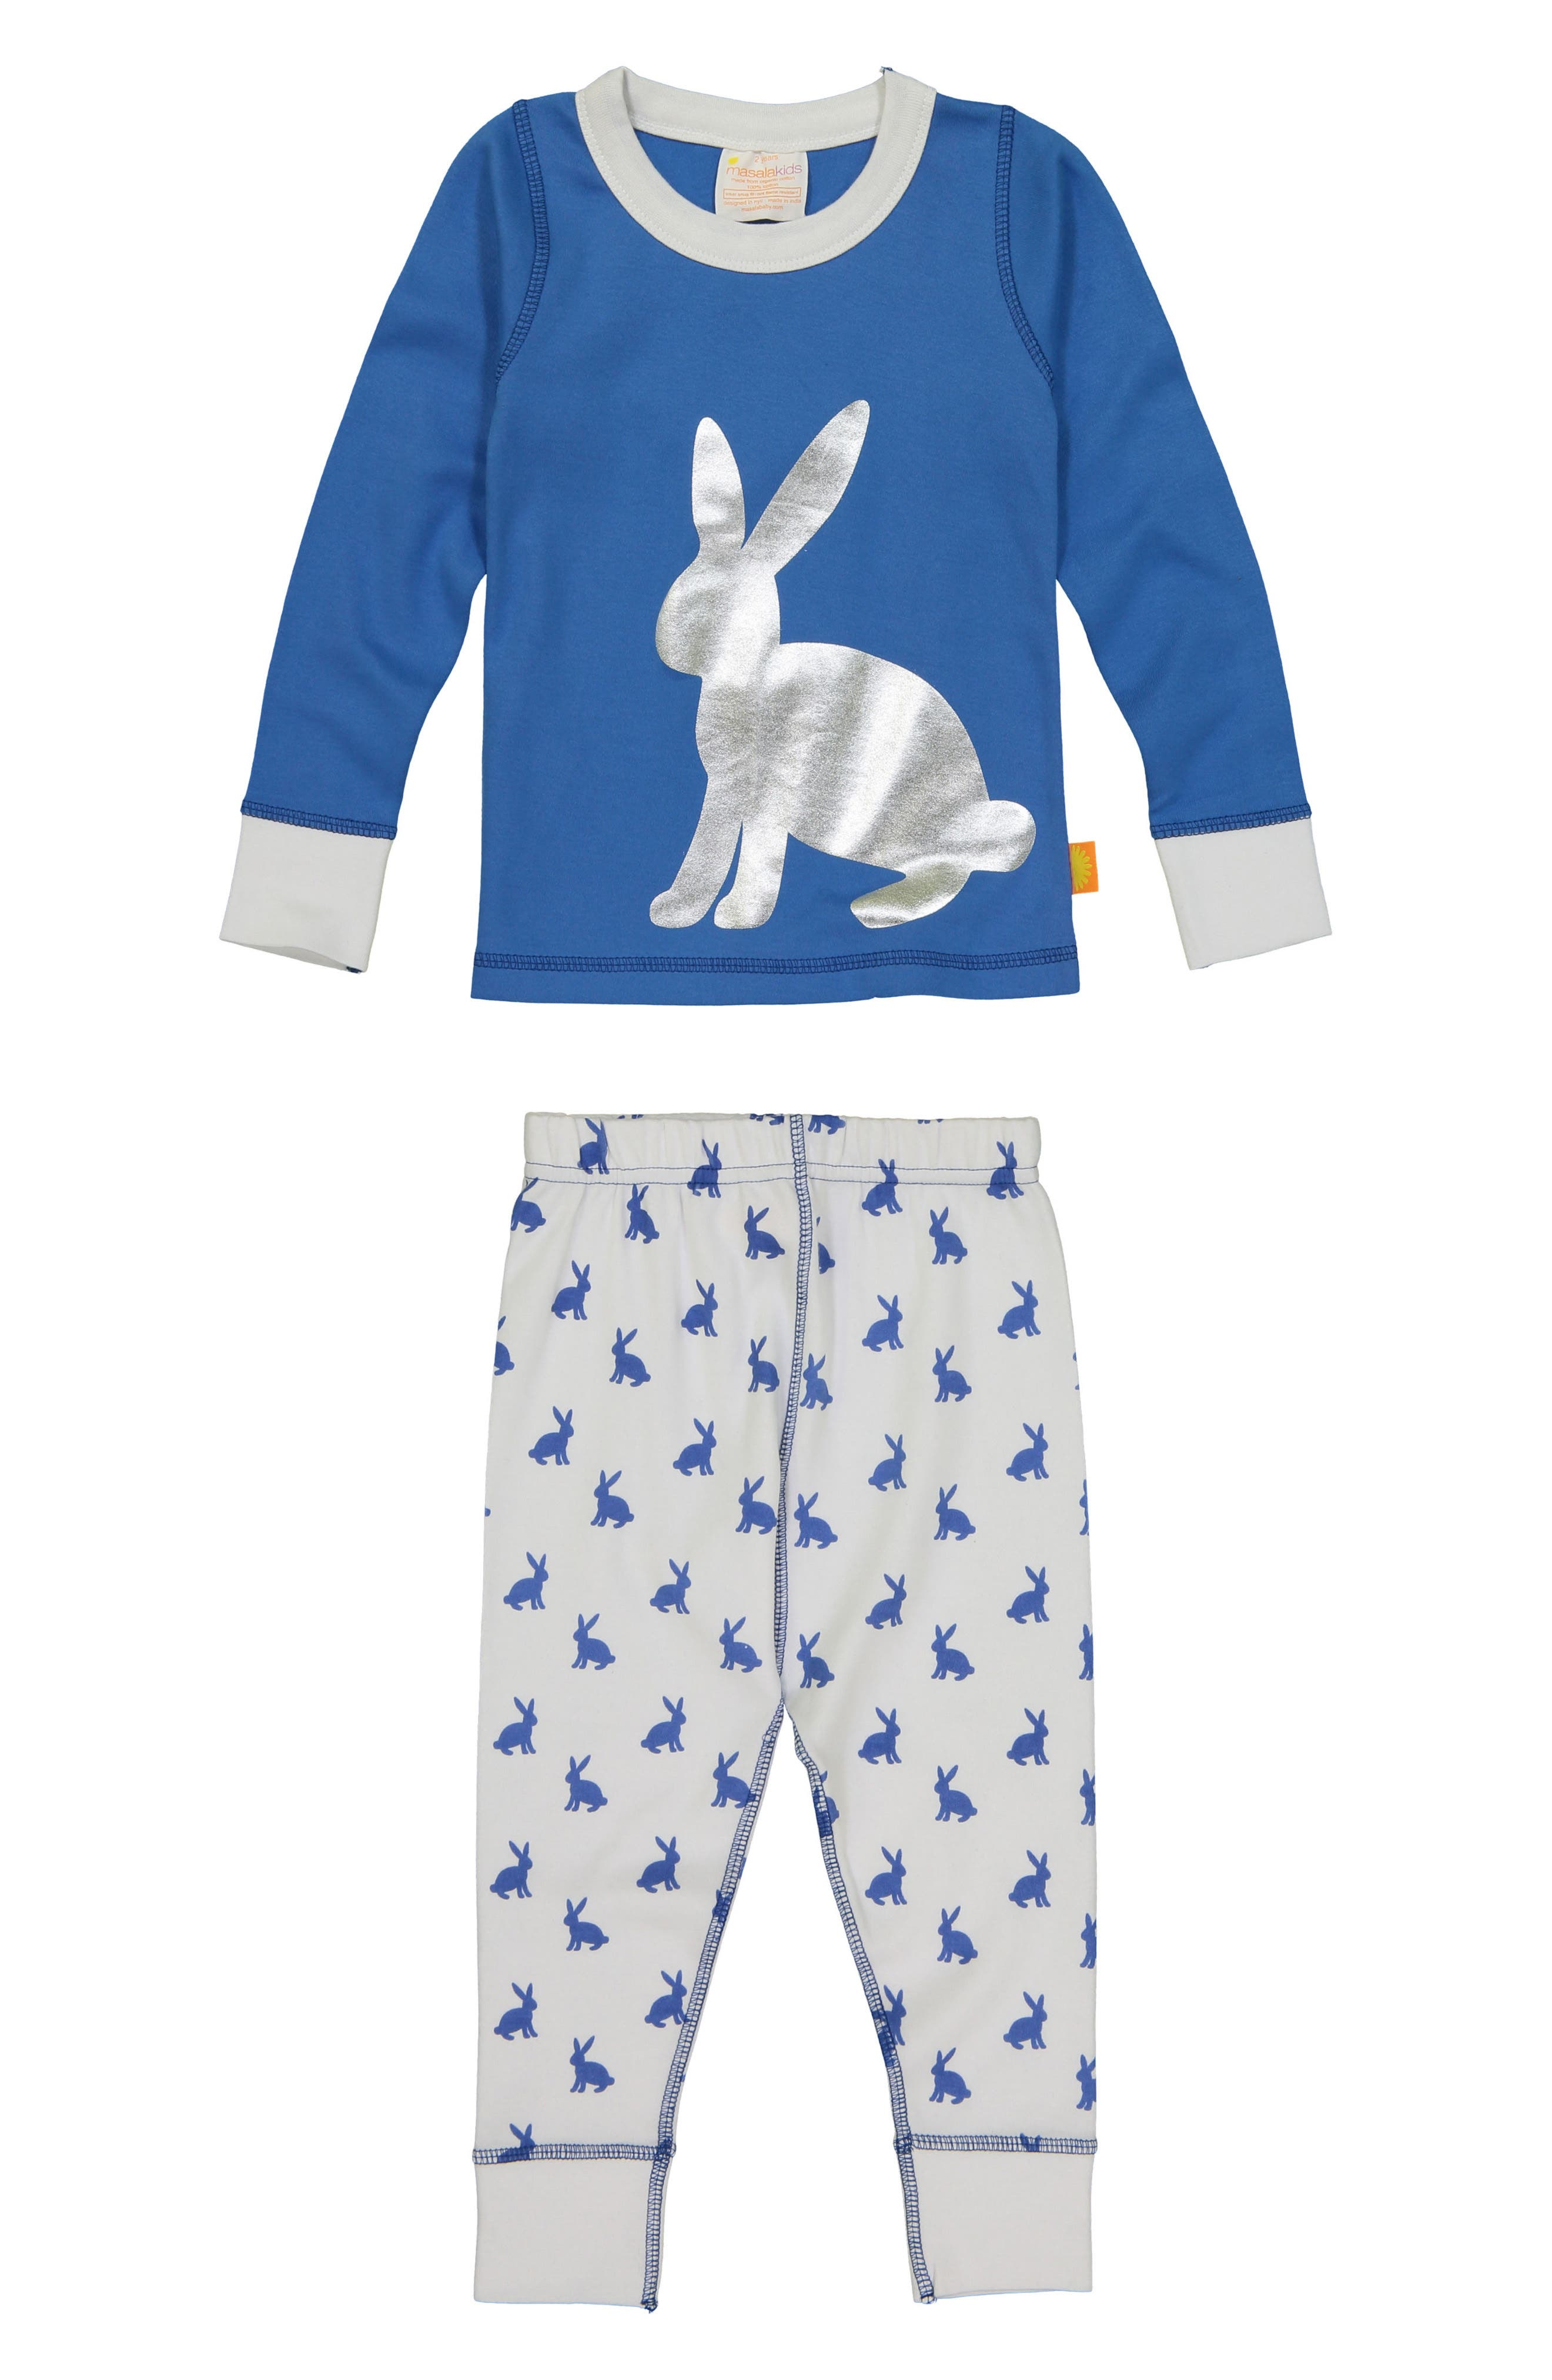 Bunny Hop Fitted Two-Piece Pajamas,                             Main thumbnail 1, color,                             Blue